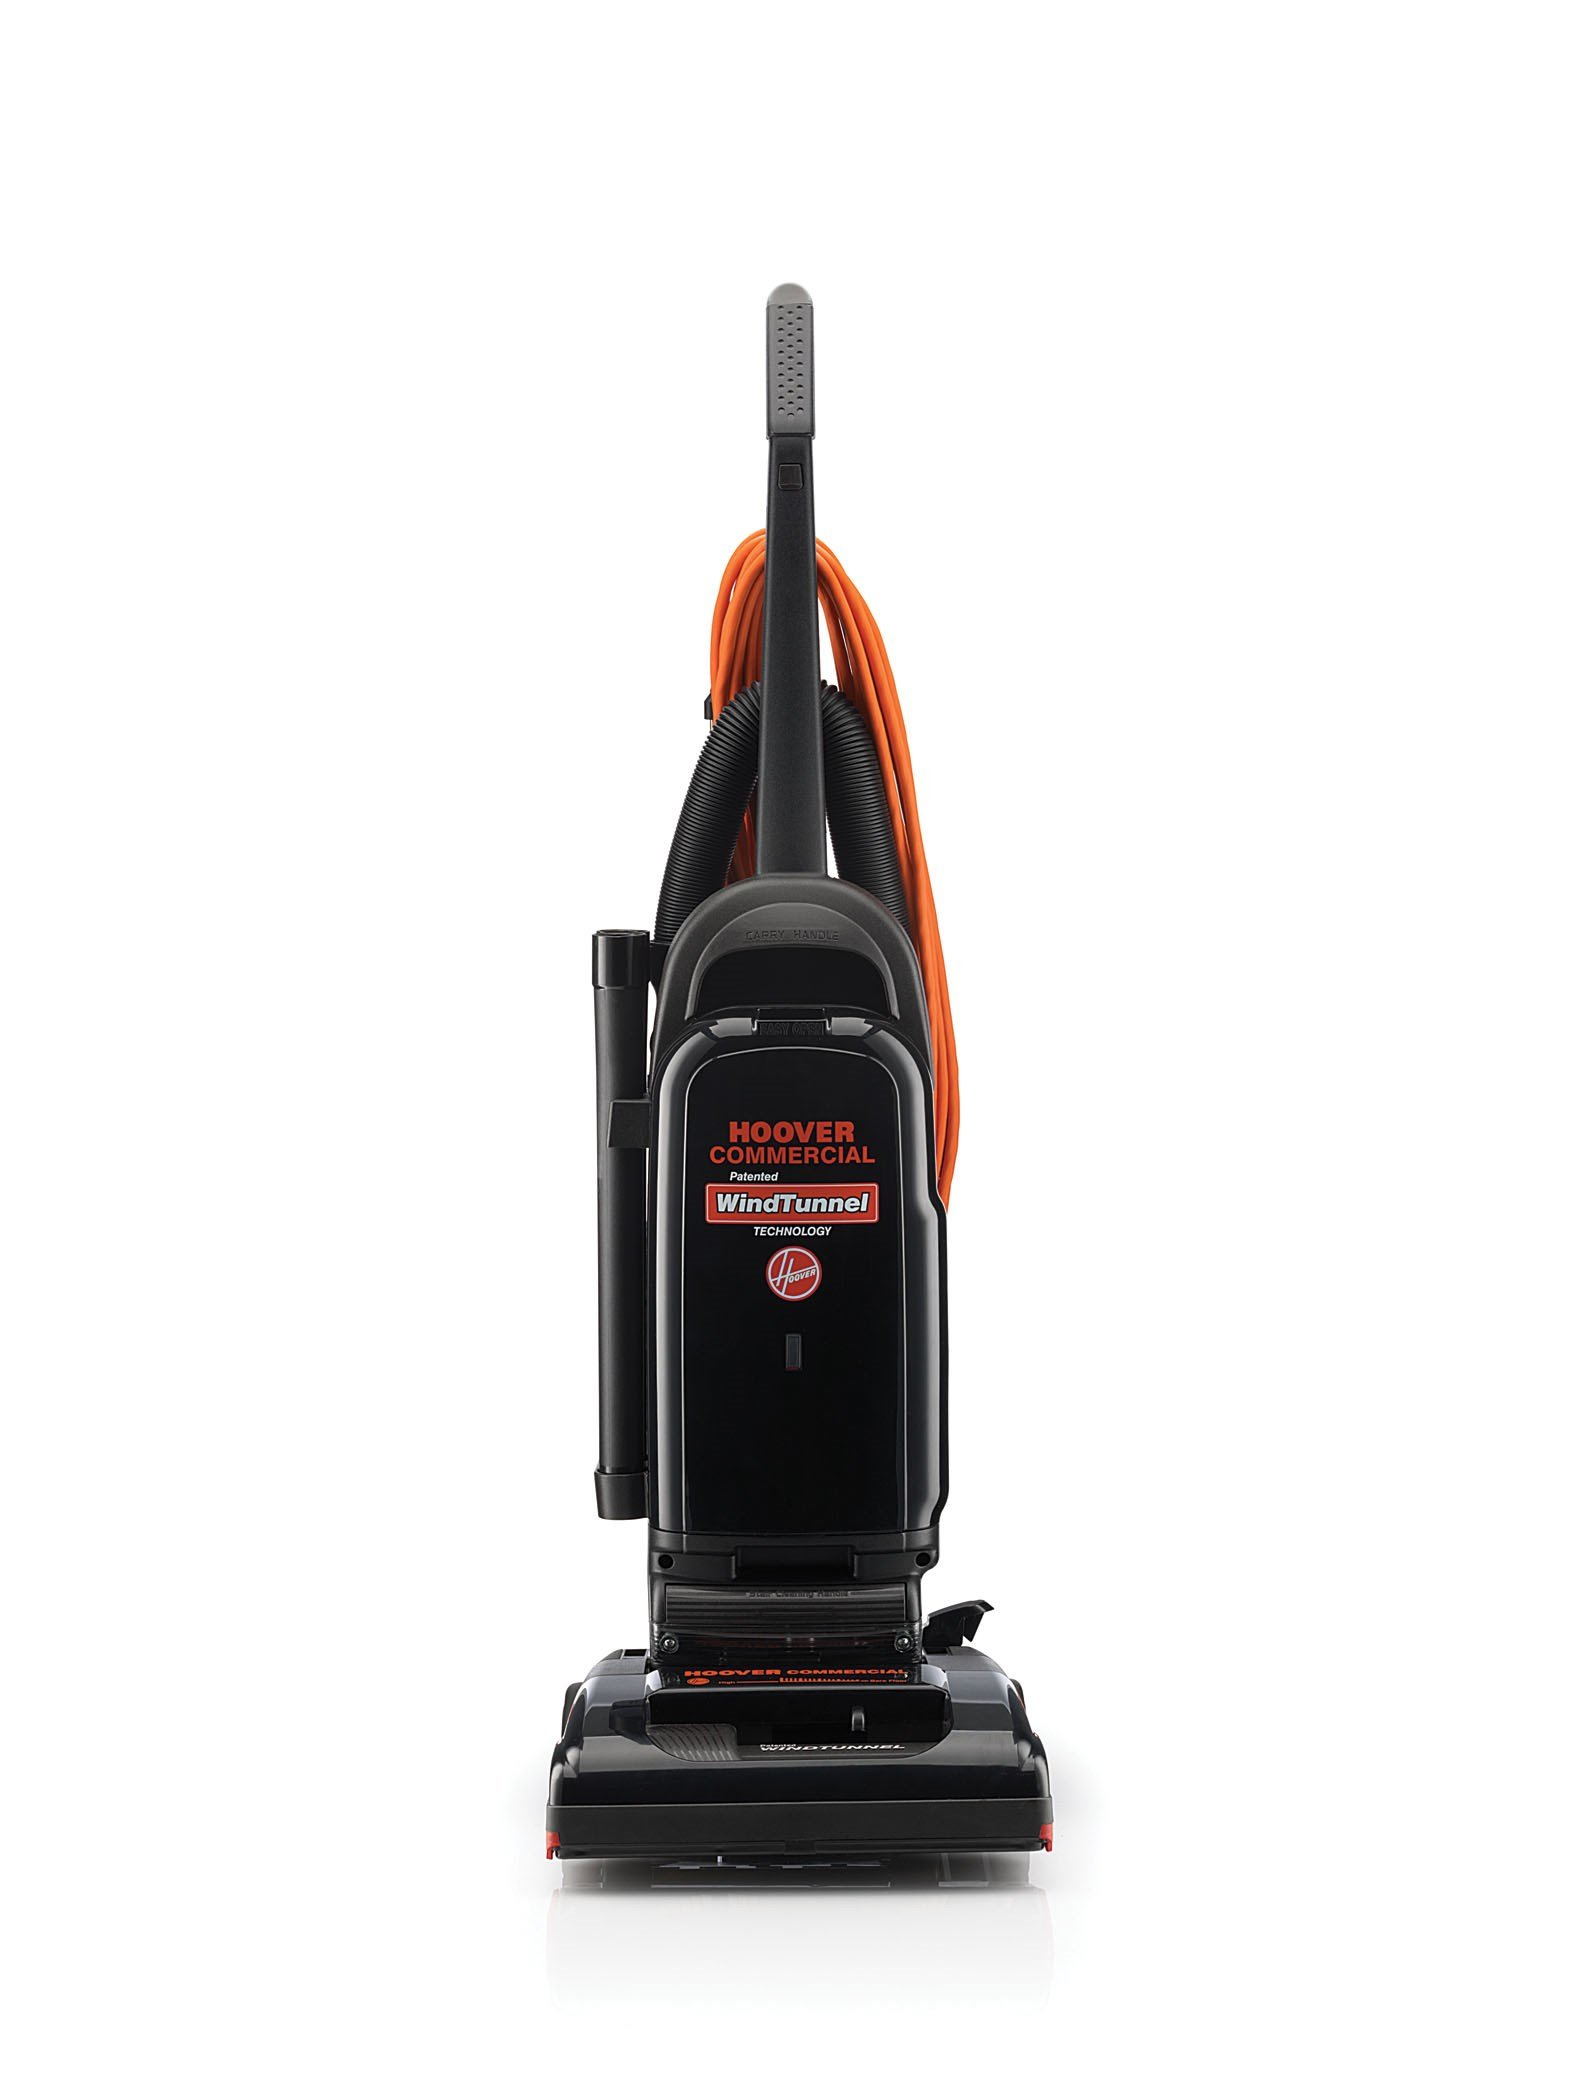 Hoover Commercial WindTunnel 13'' Bagged Upright Vacuum C1703900 by Hoover Commercial